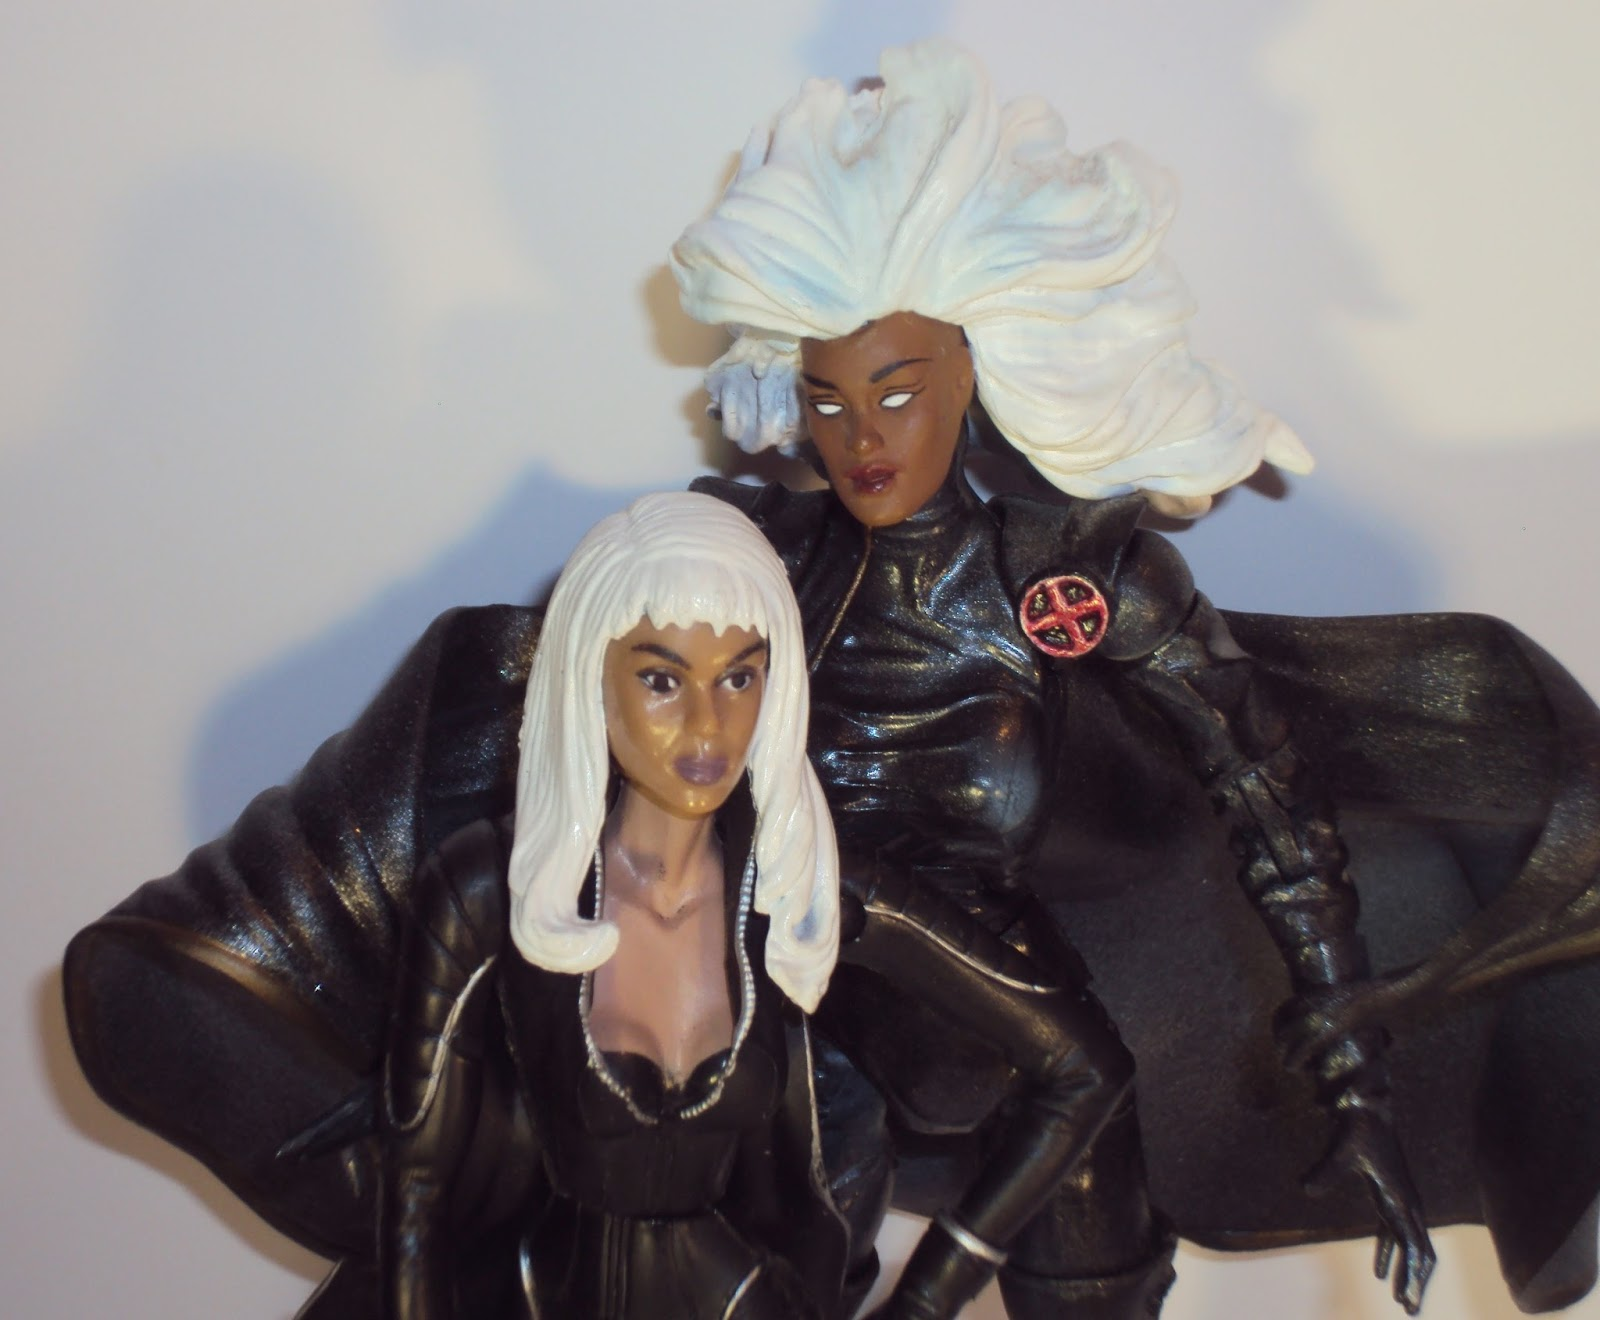 Check Out These Comparison Shots And Youll See How Different Halle Is From The Actual Storm Character